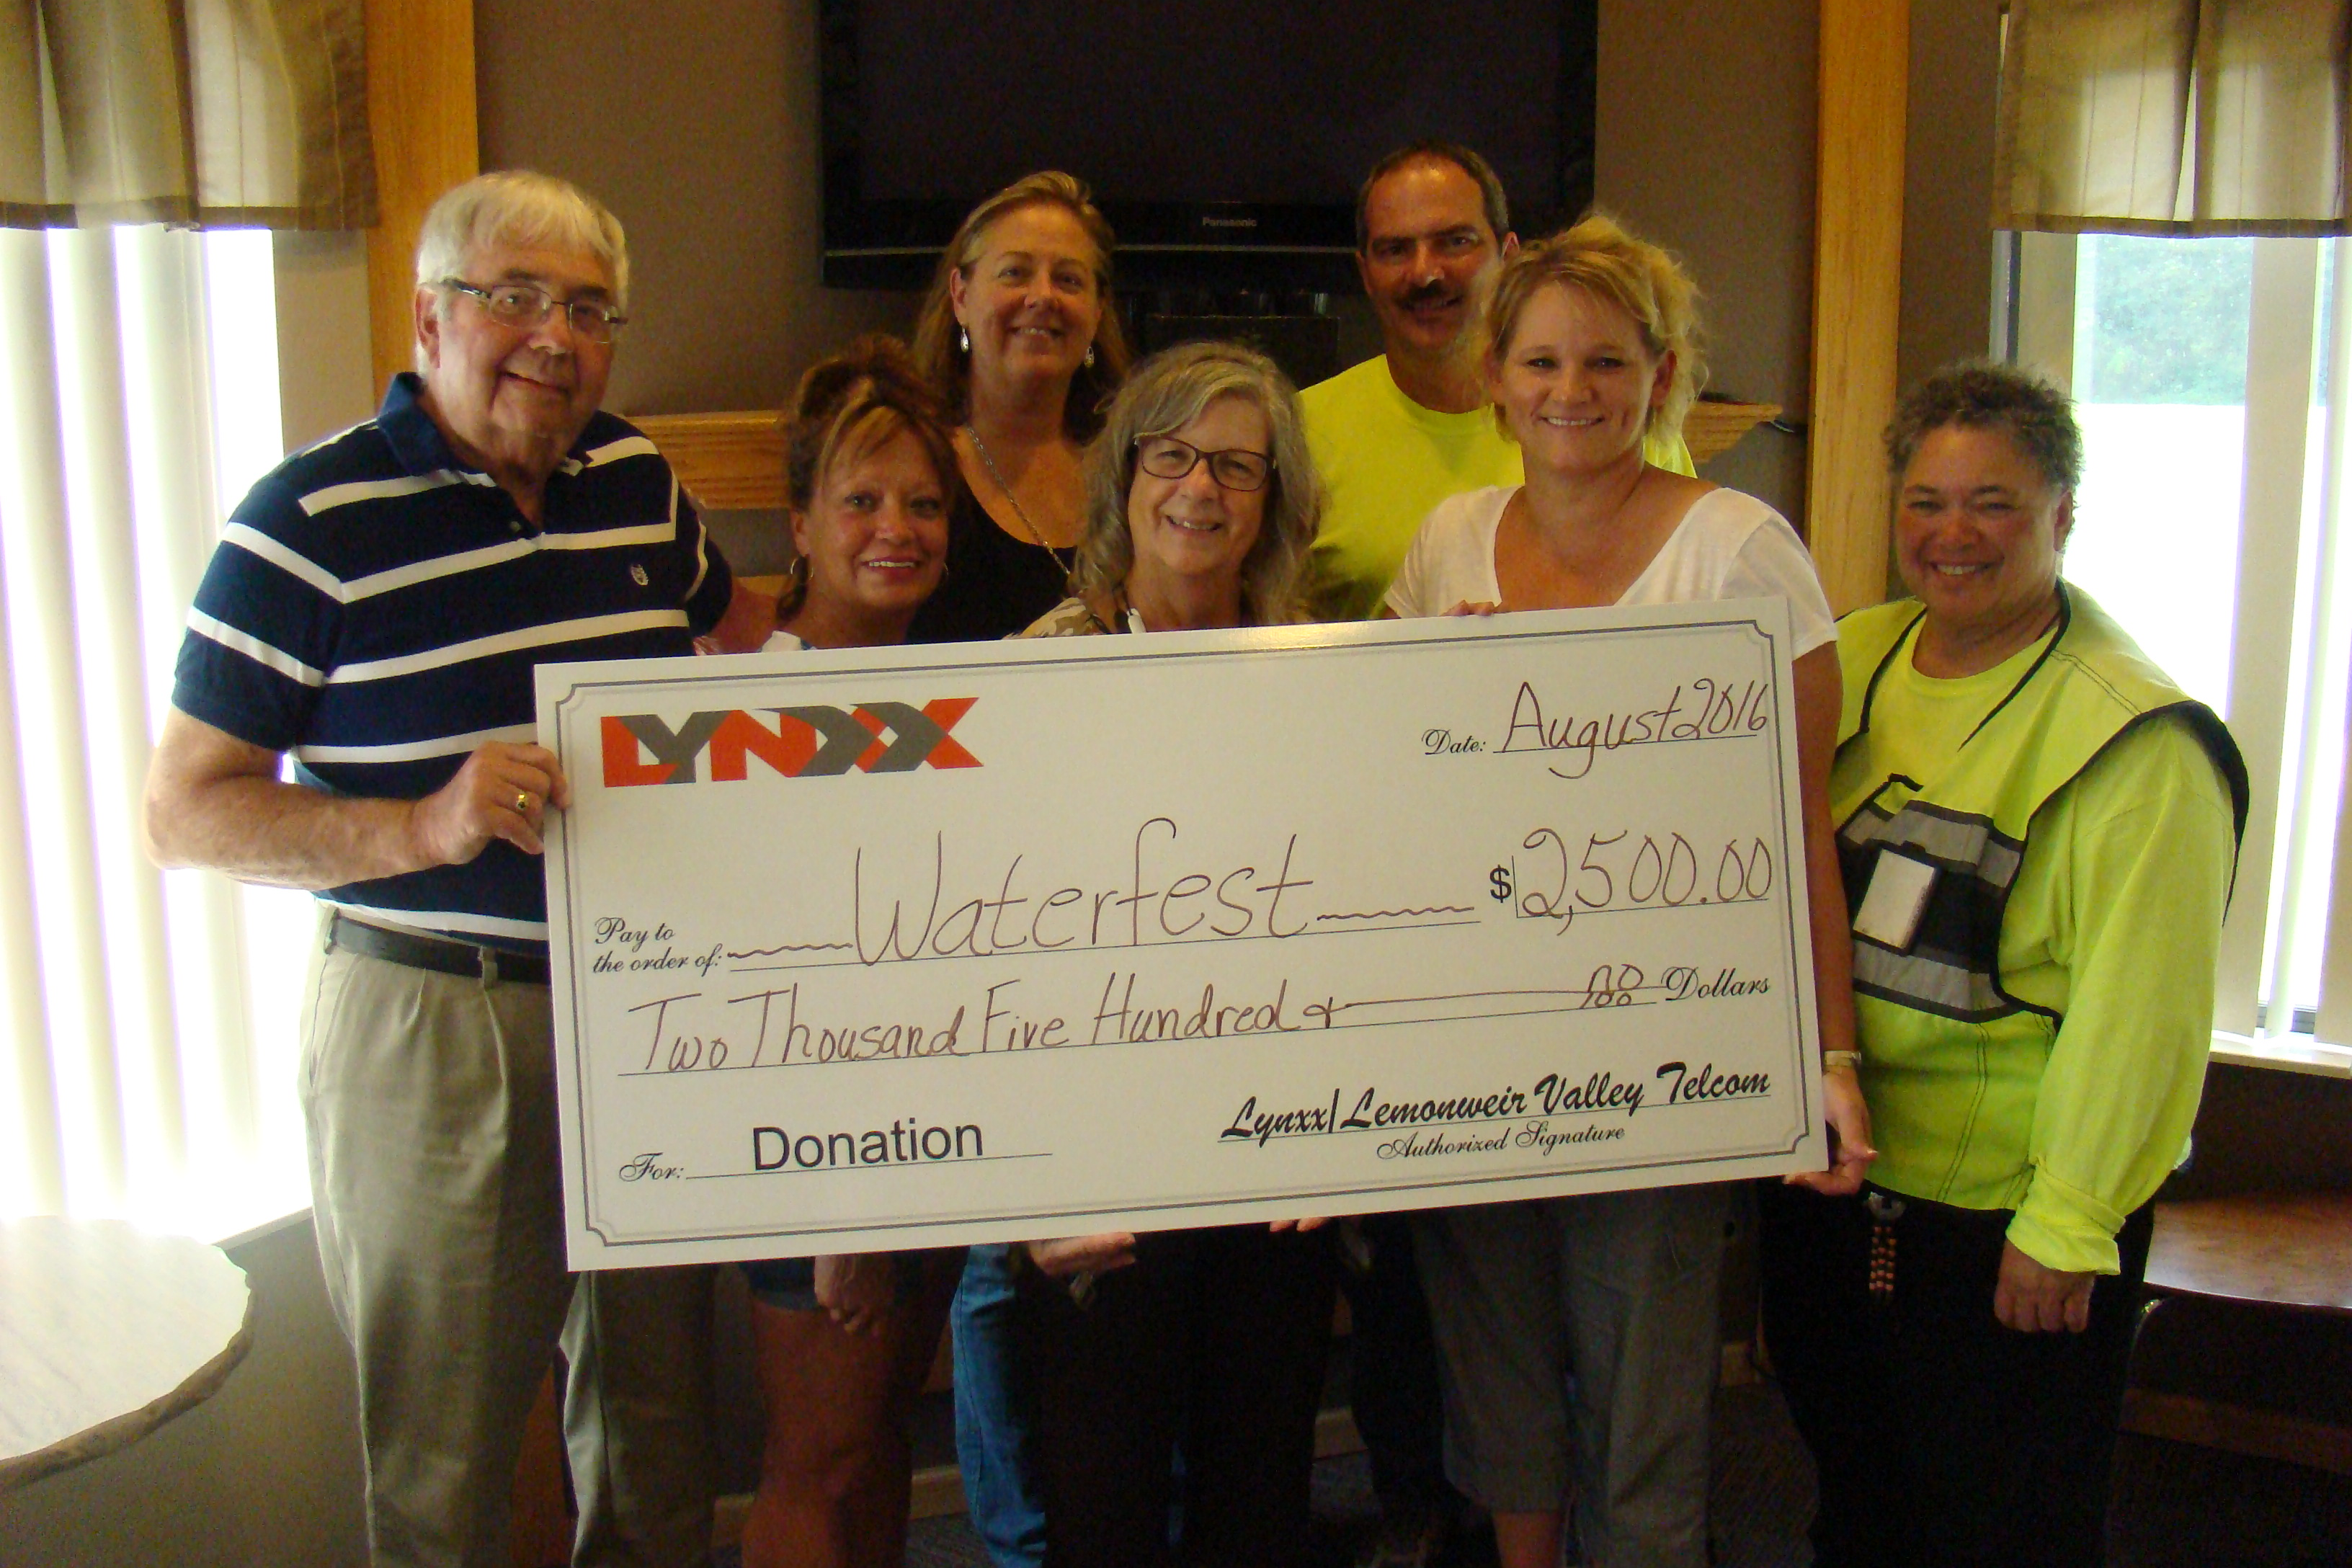 Lynxx Donates to Waterfest